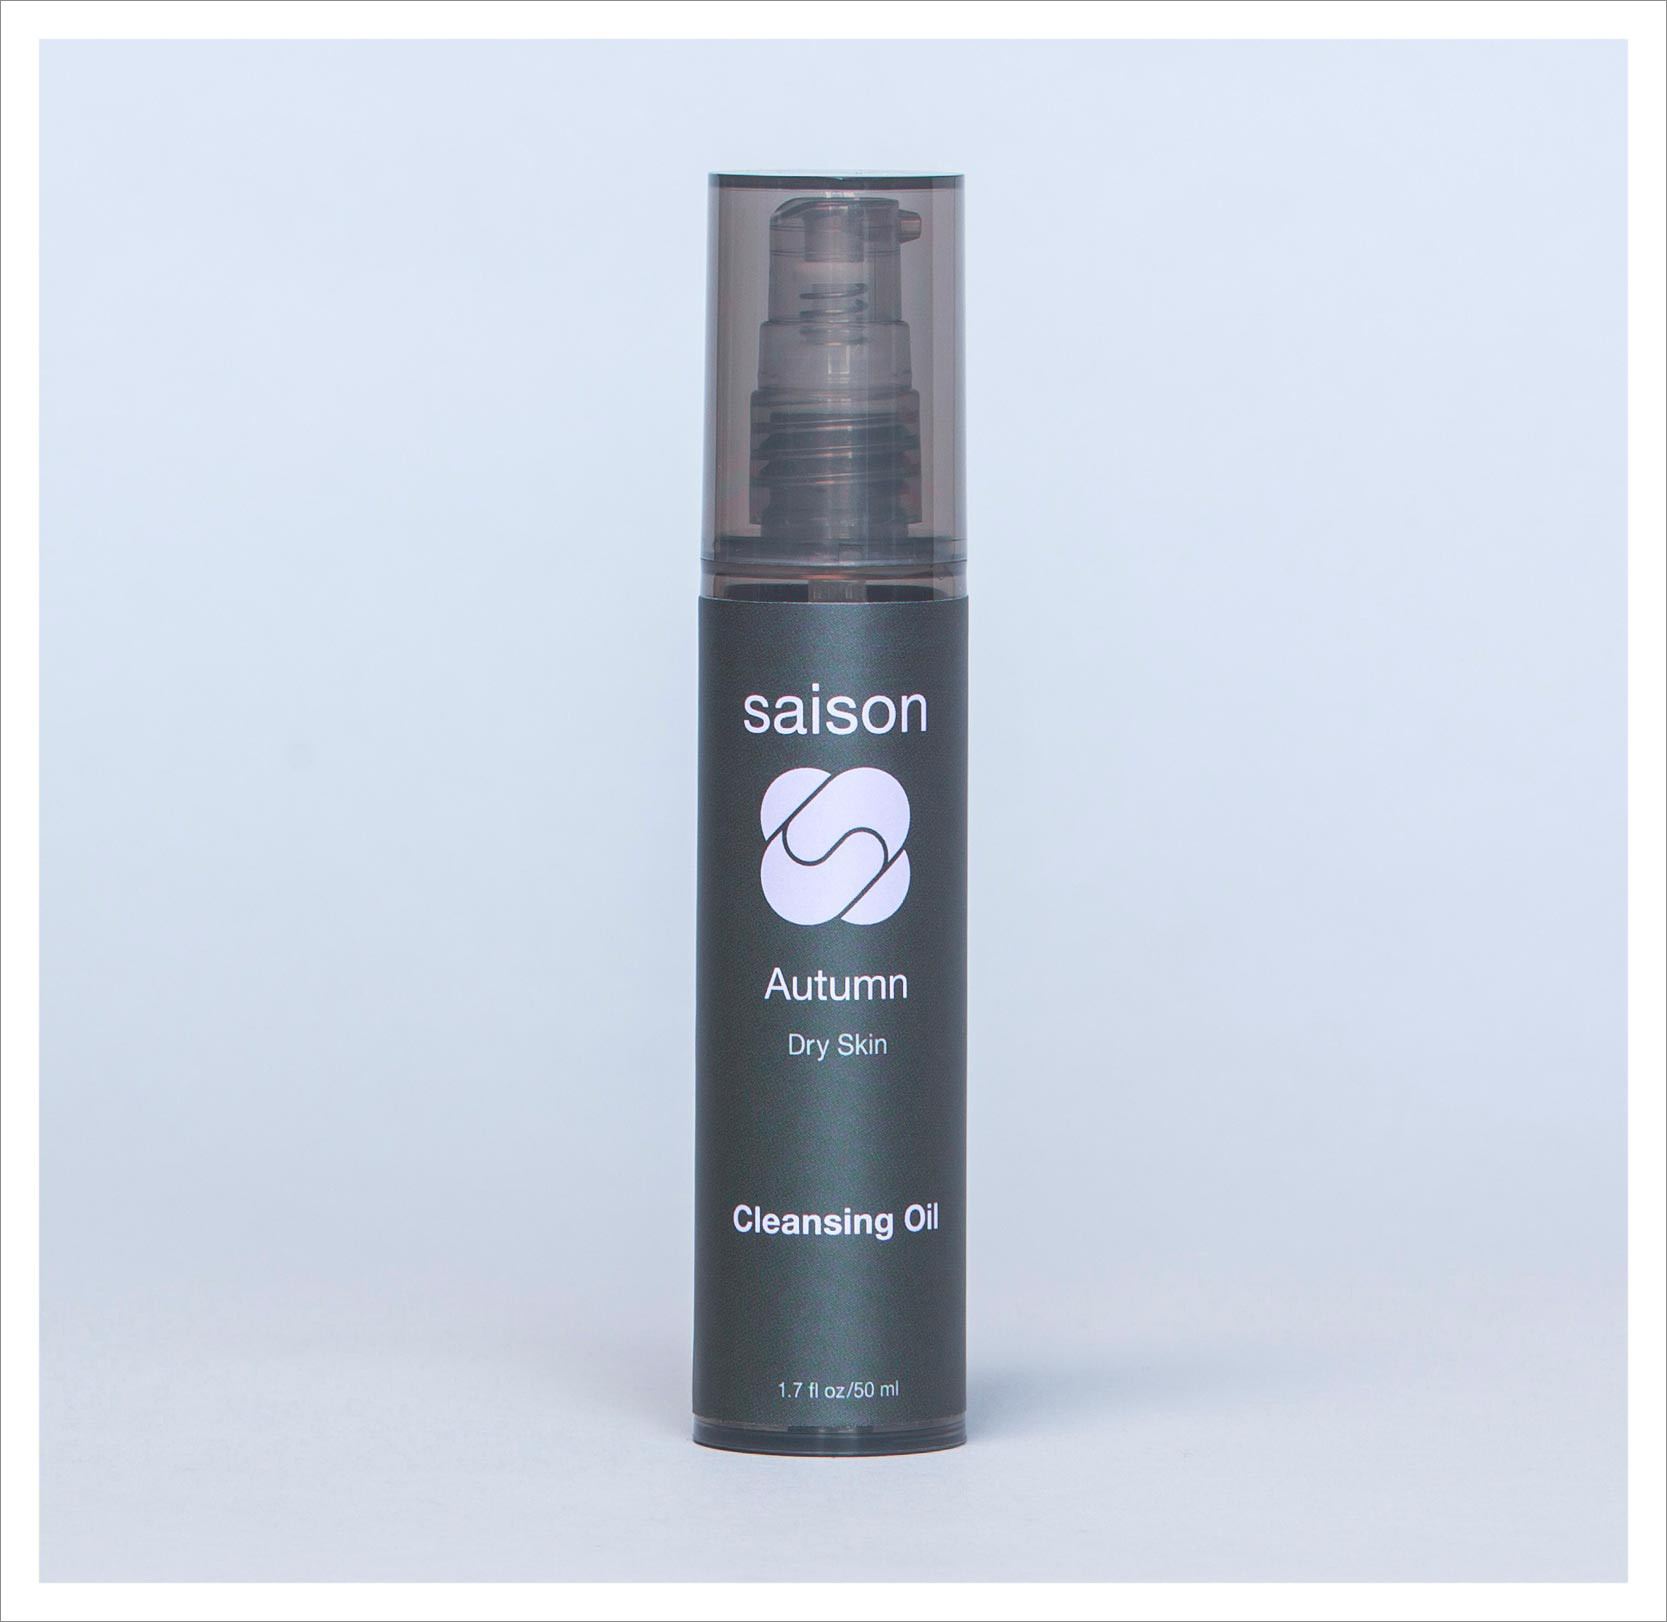 Saison Autumn Cleansing Oil